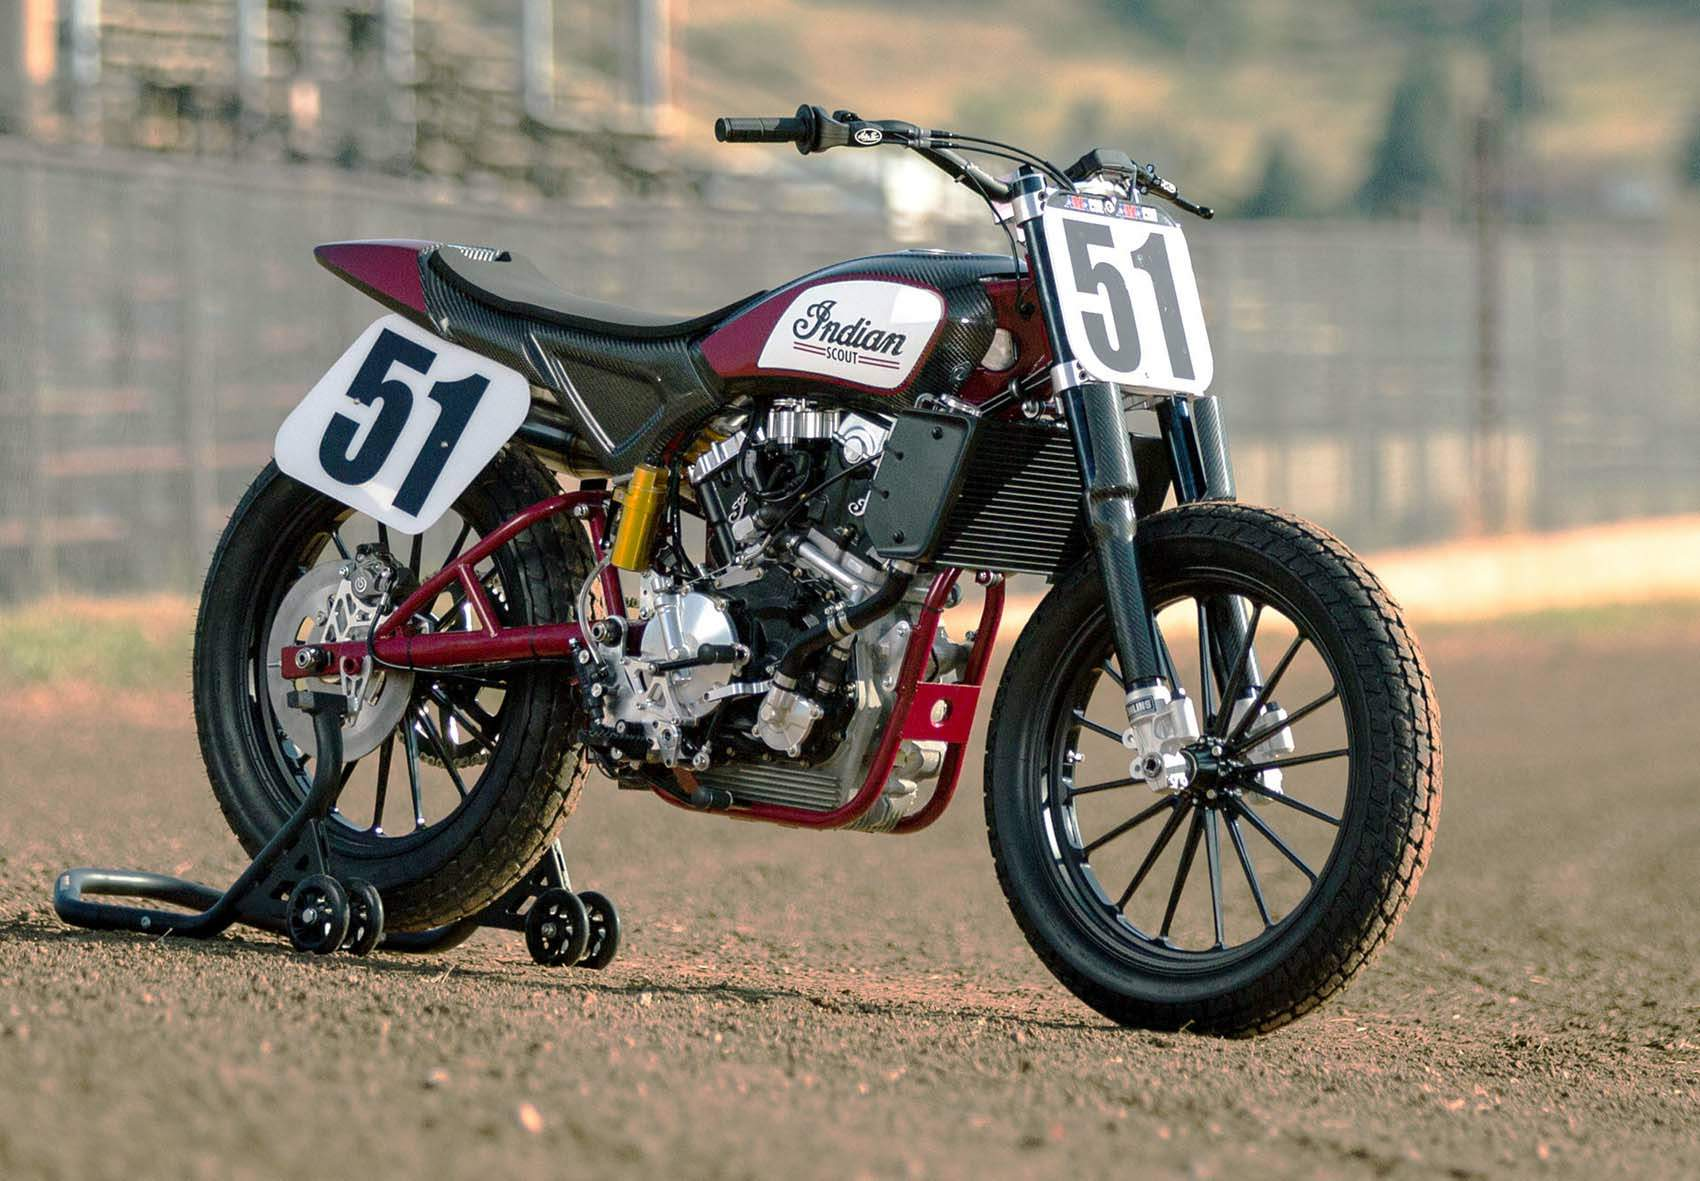 Indian Scout Ftr 750